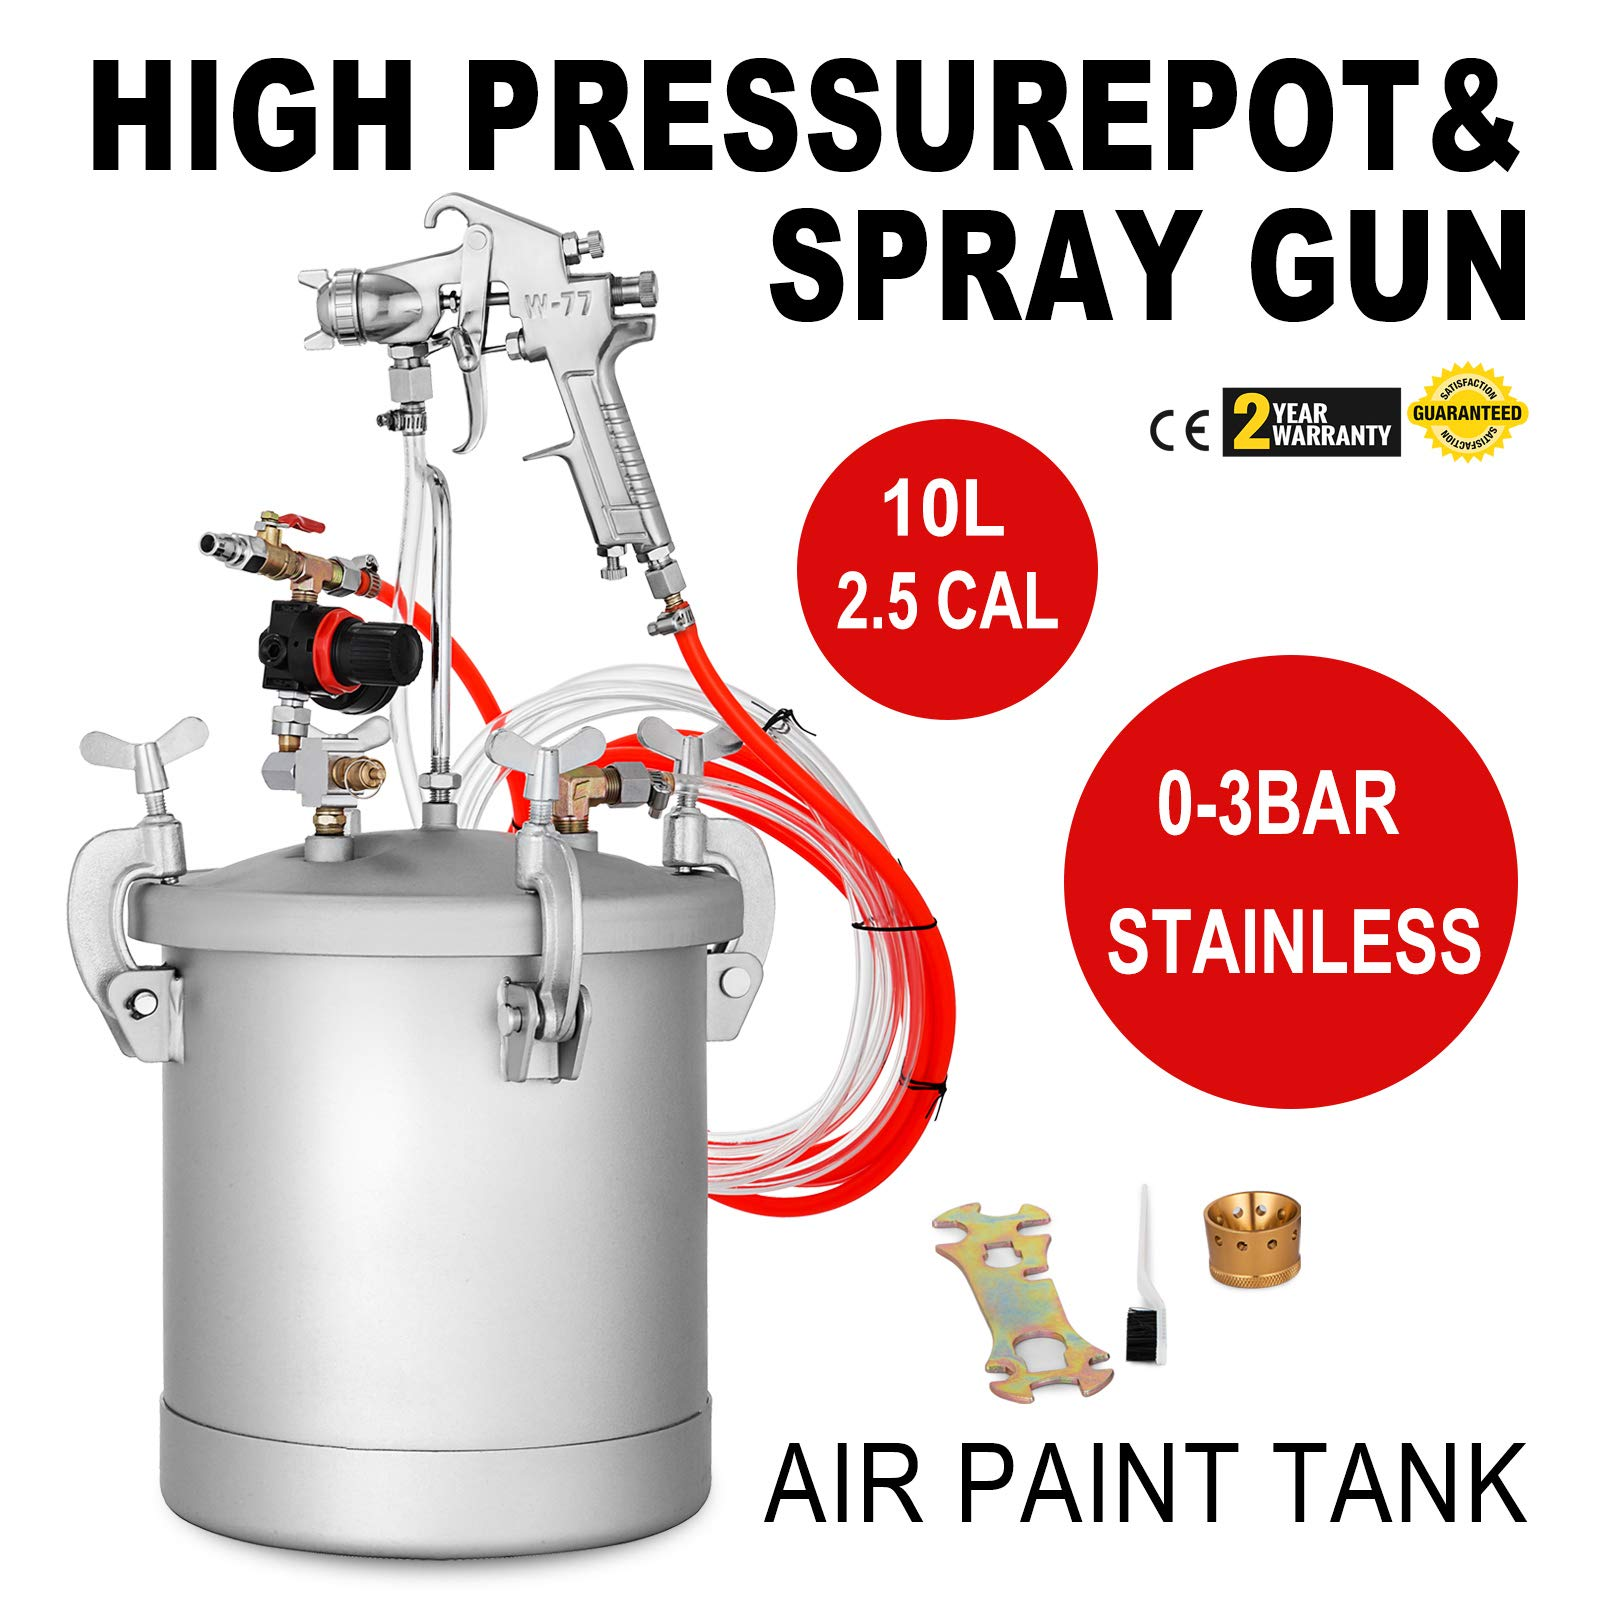 VEVOR Pressure Pot Tank 10L / 2.5 Gallon Paint Pressure Pot Stainless Paint Tank with 2.5mm Nozzle Spray Guns and Paint Hose (10L 2.5mm)